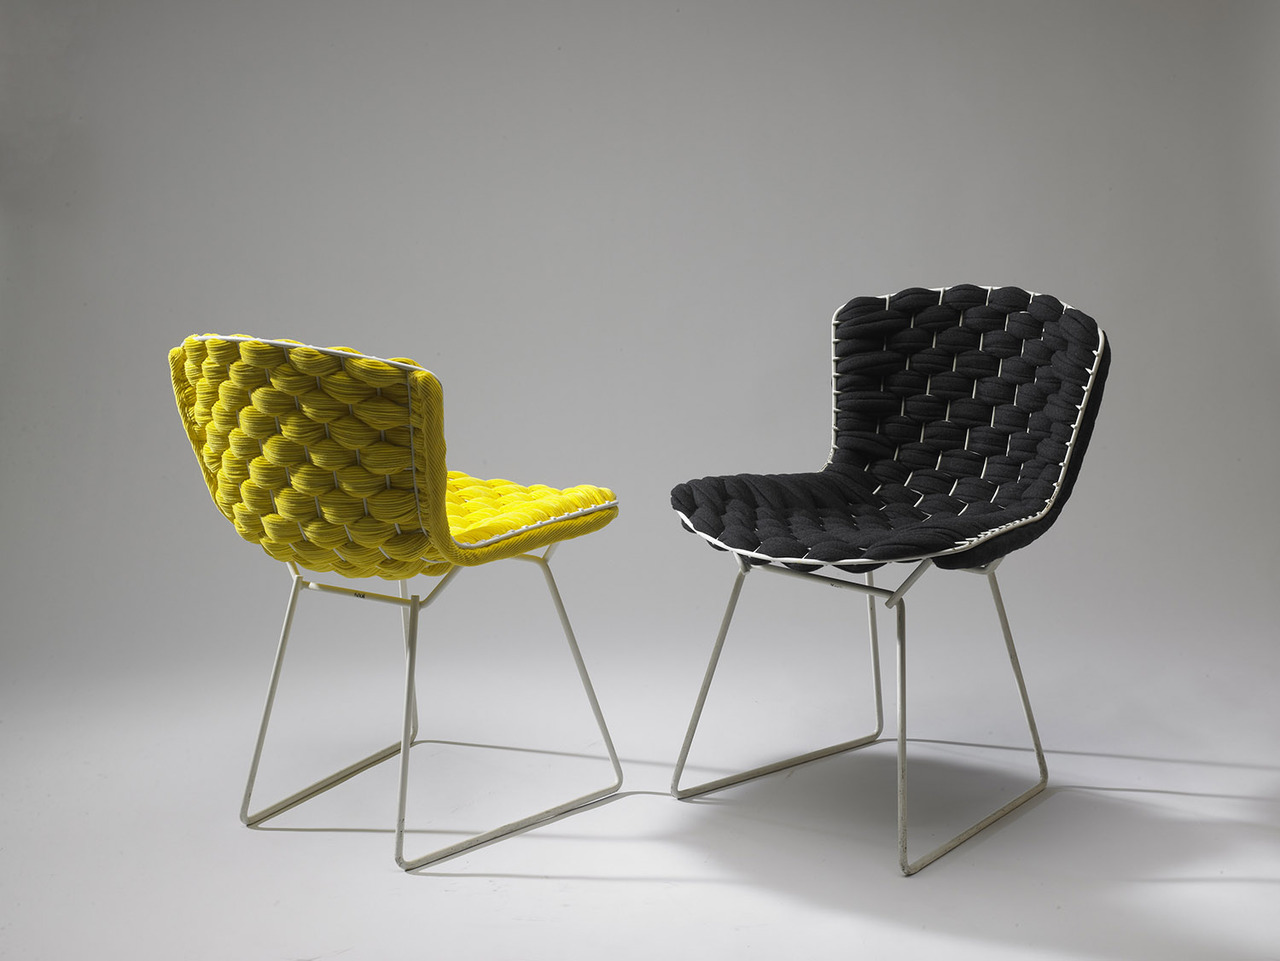 Cl ment brazille reinvents the iconic bertoia chair with for H furniture loom chair